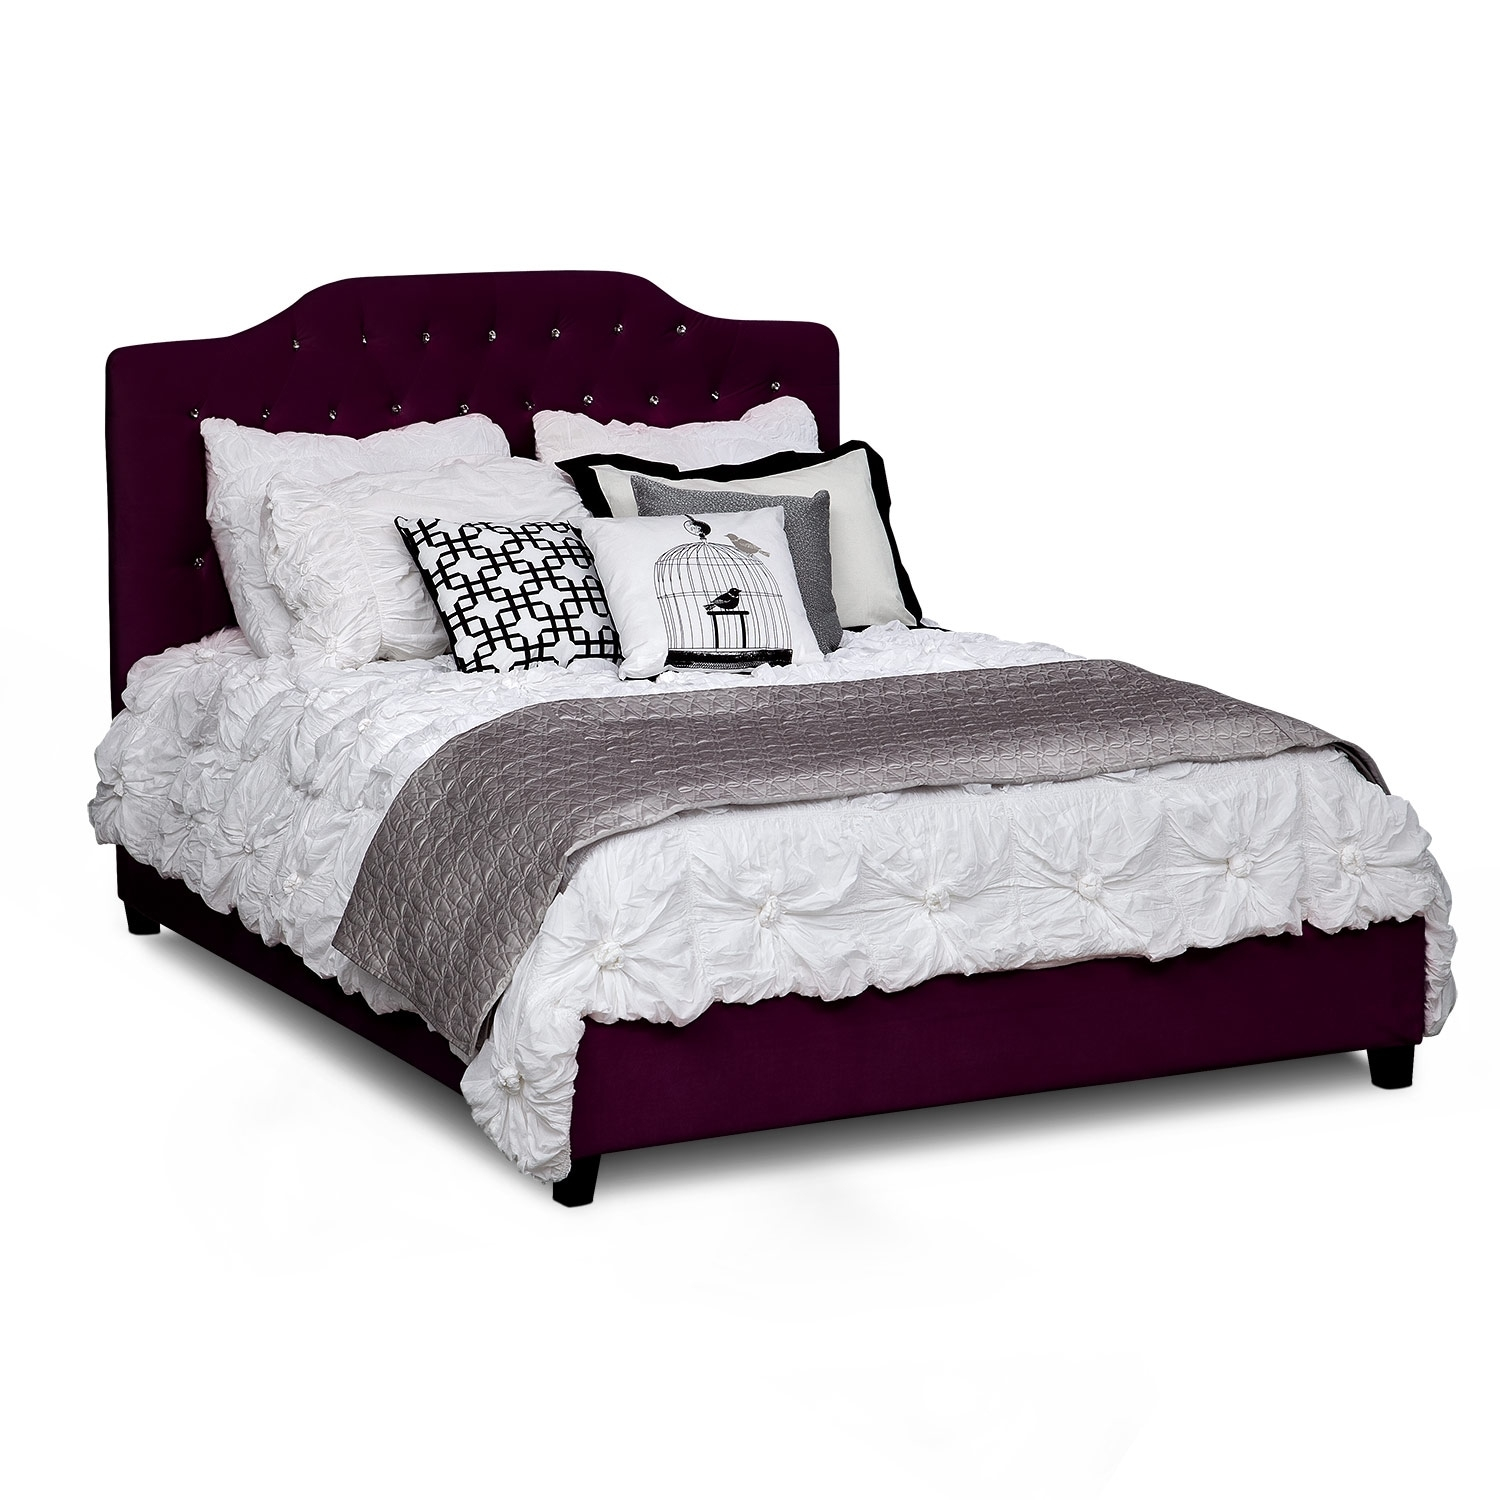 Valerie Queen Bed - Purple